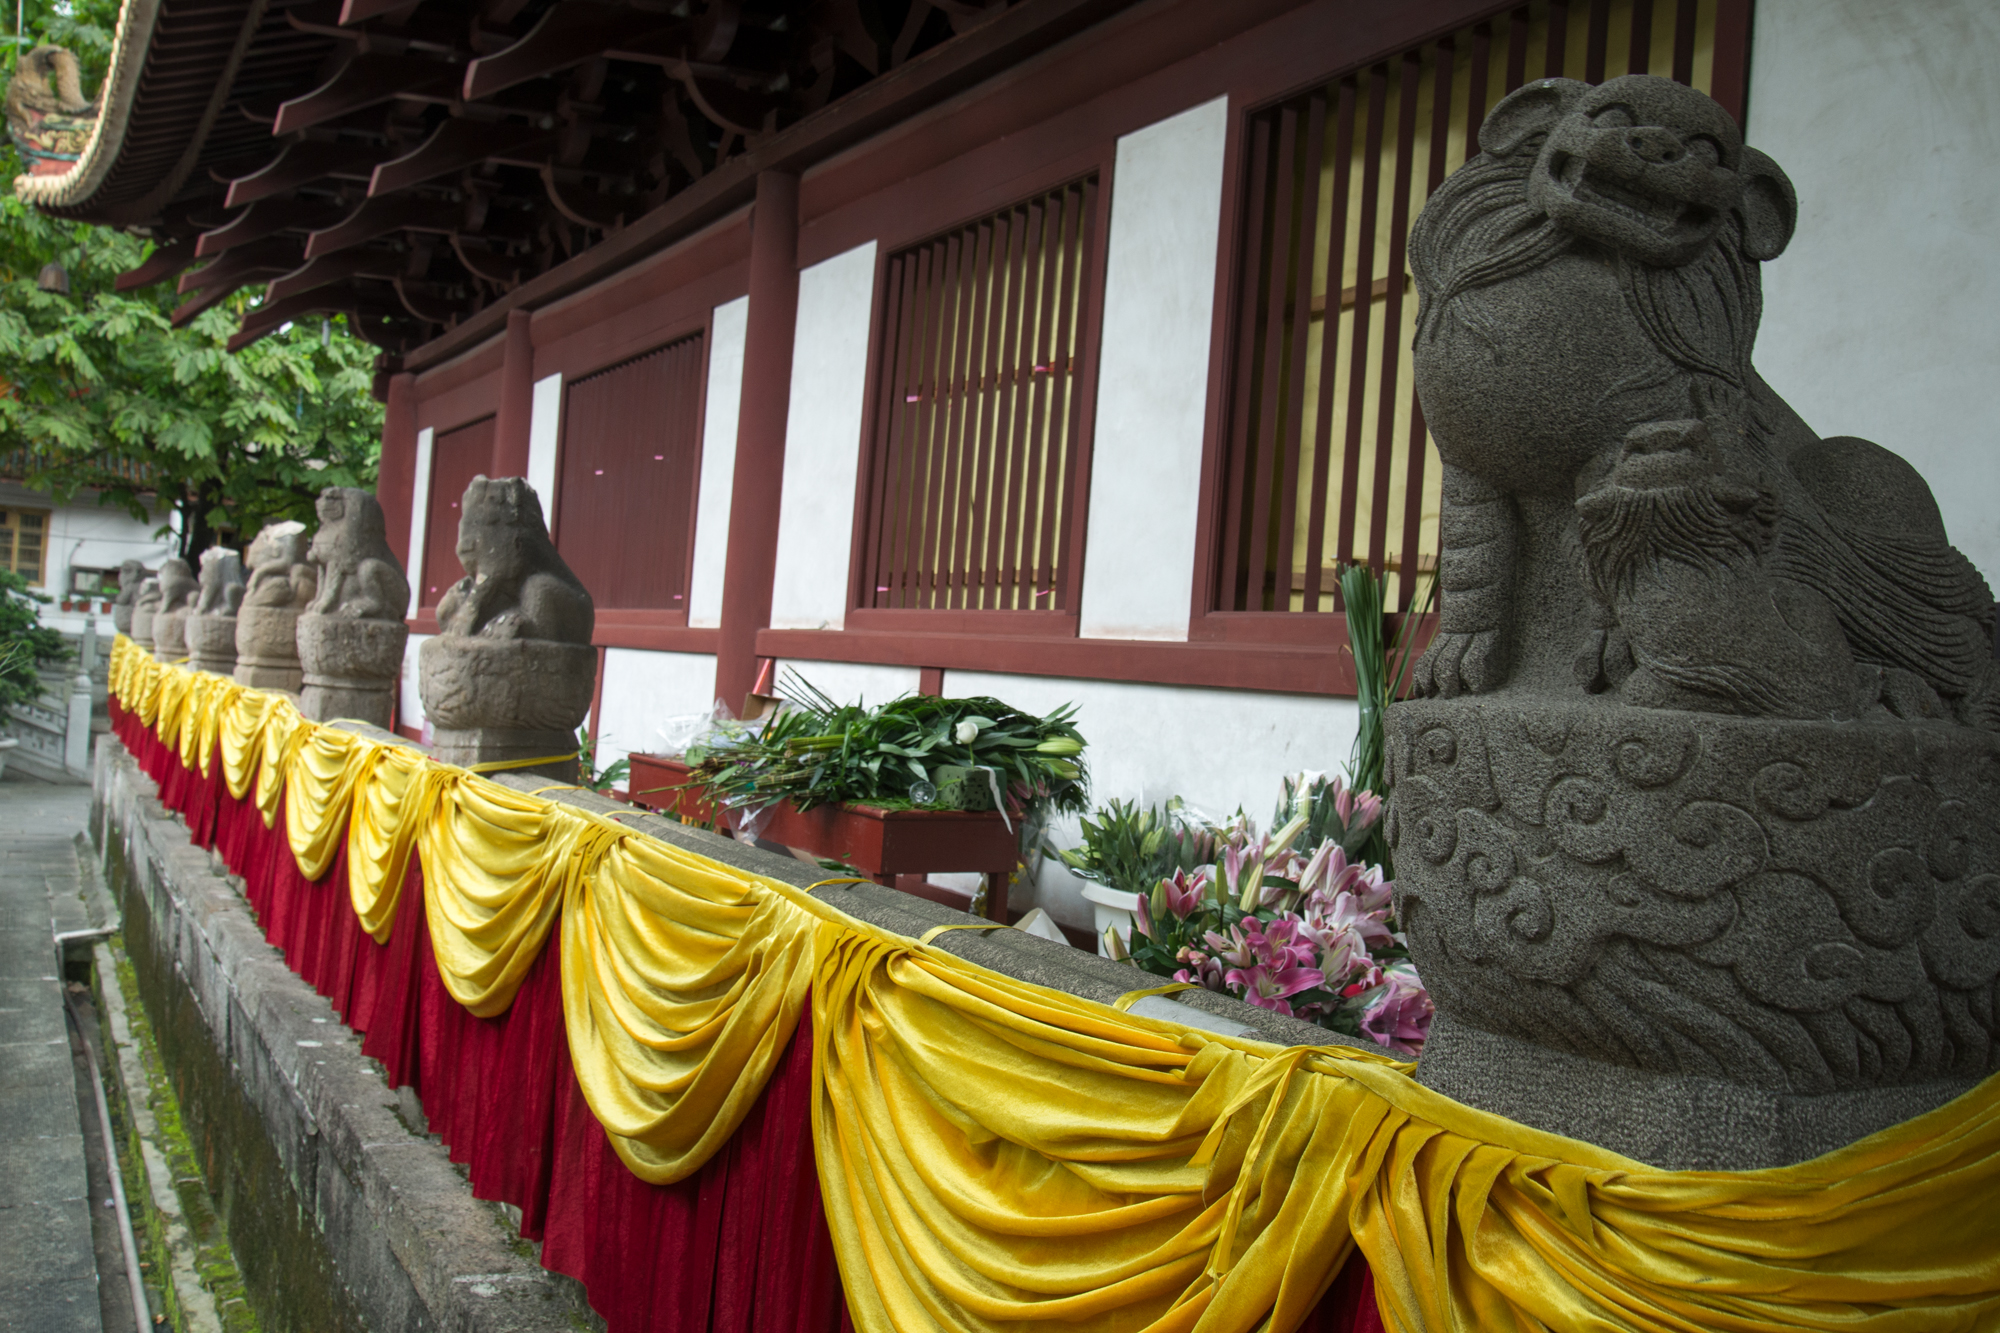 Guangxiao Buddhist Temple